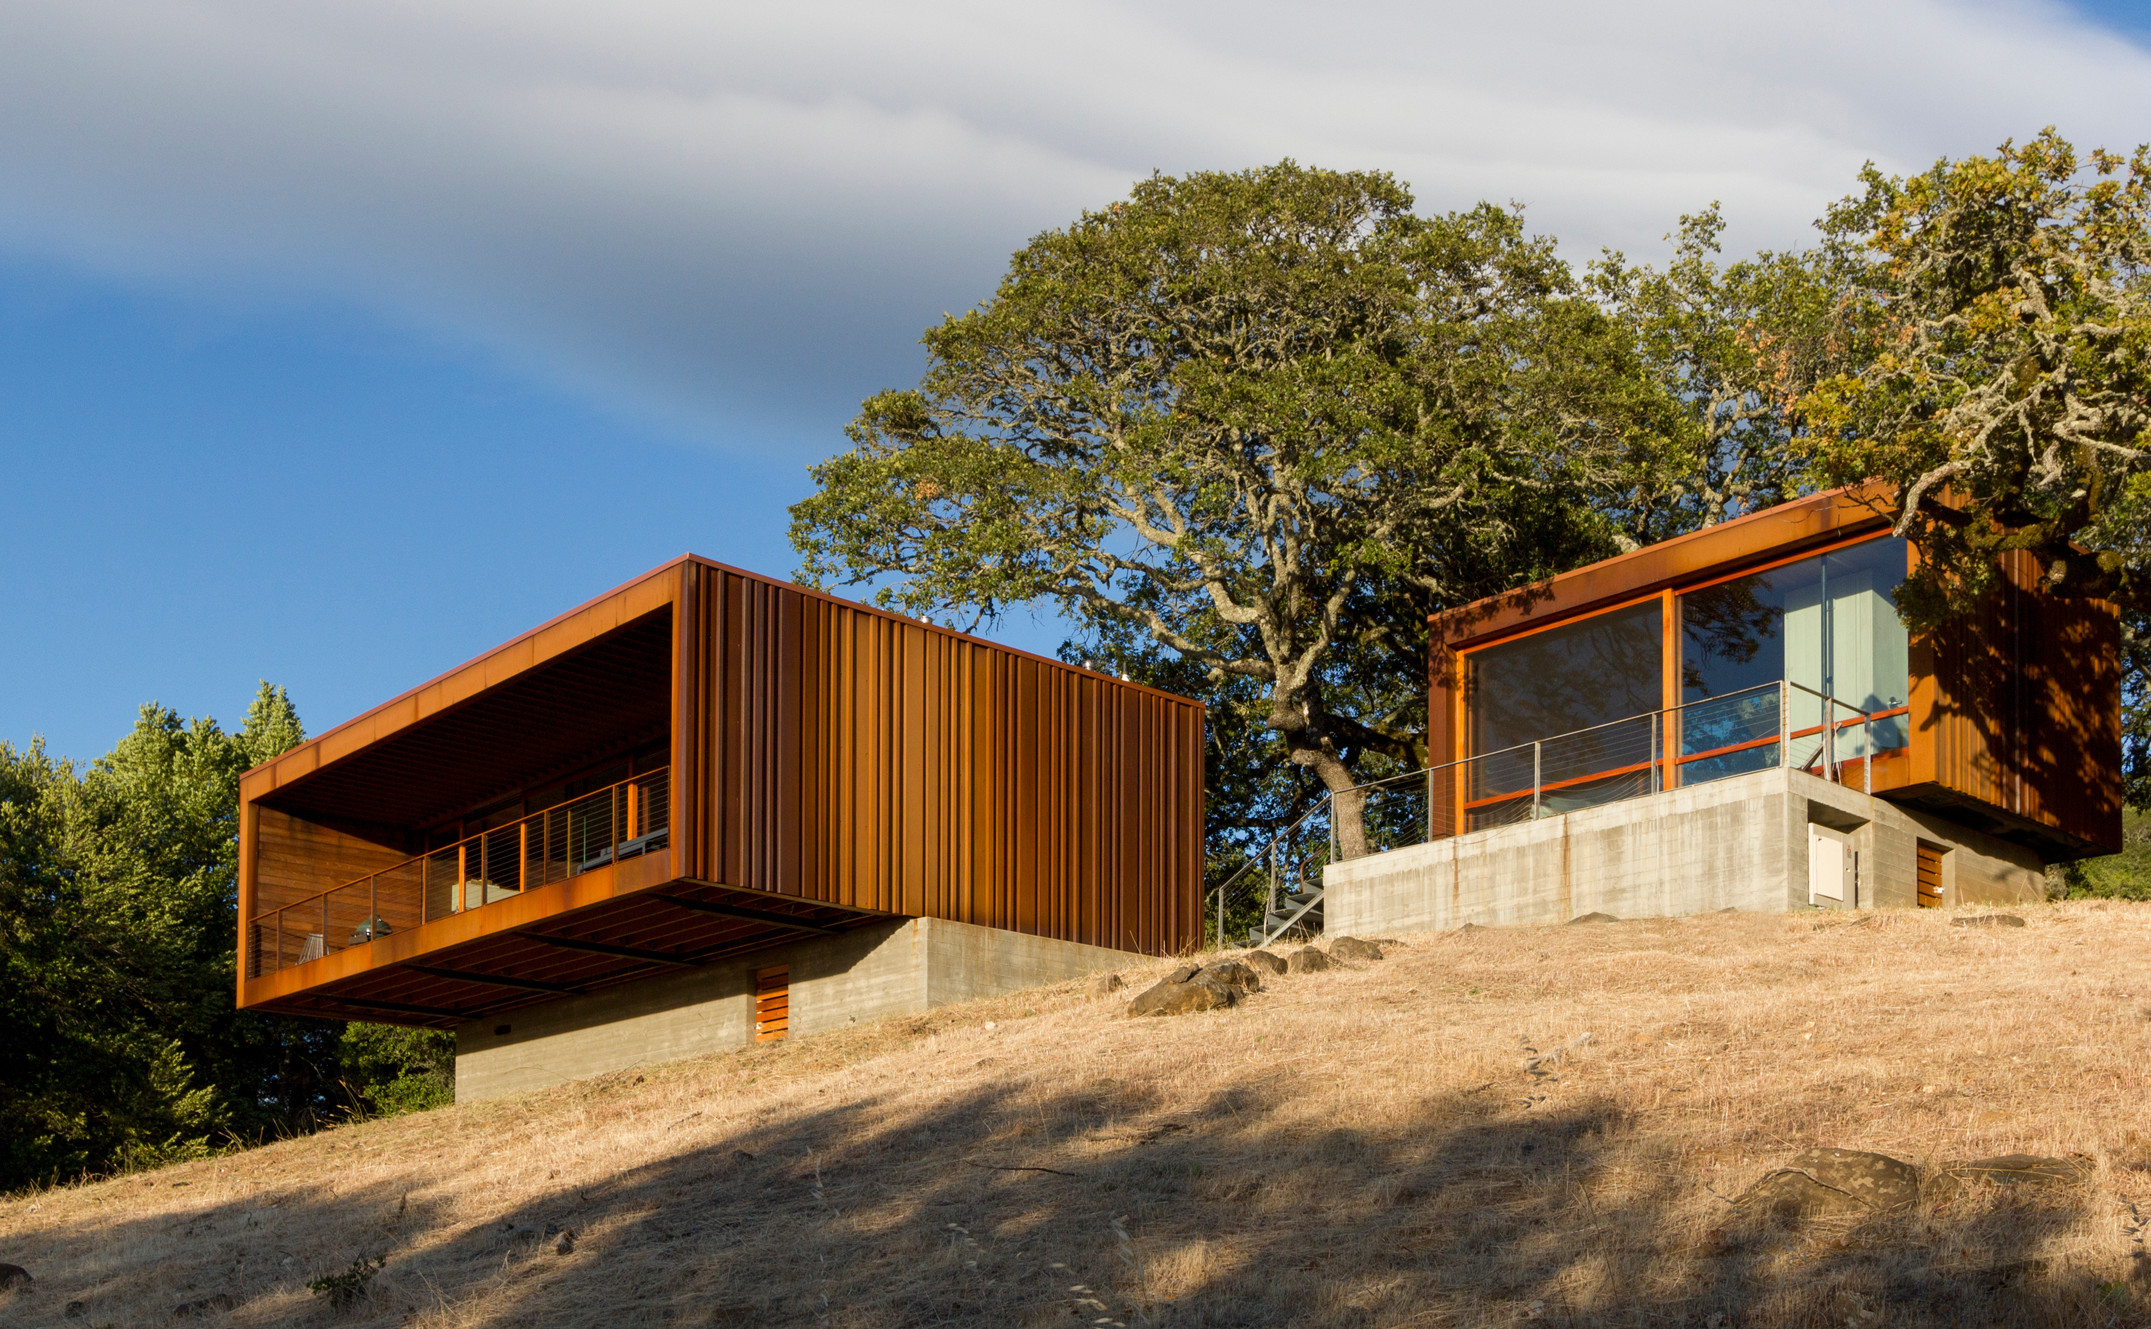 sonoma-weehouse-alchemy-architects-architecture-residential-santa-rosa-california-usa_dezeen_hero